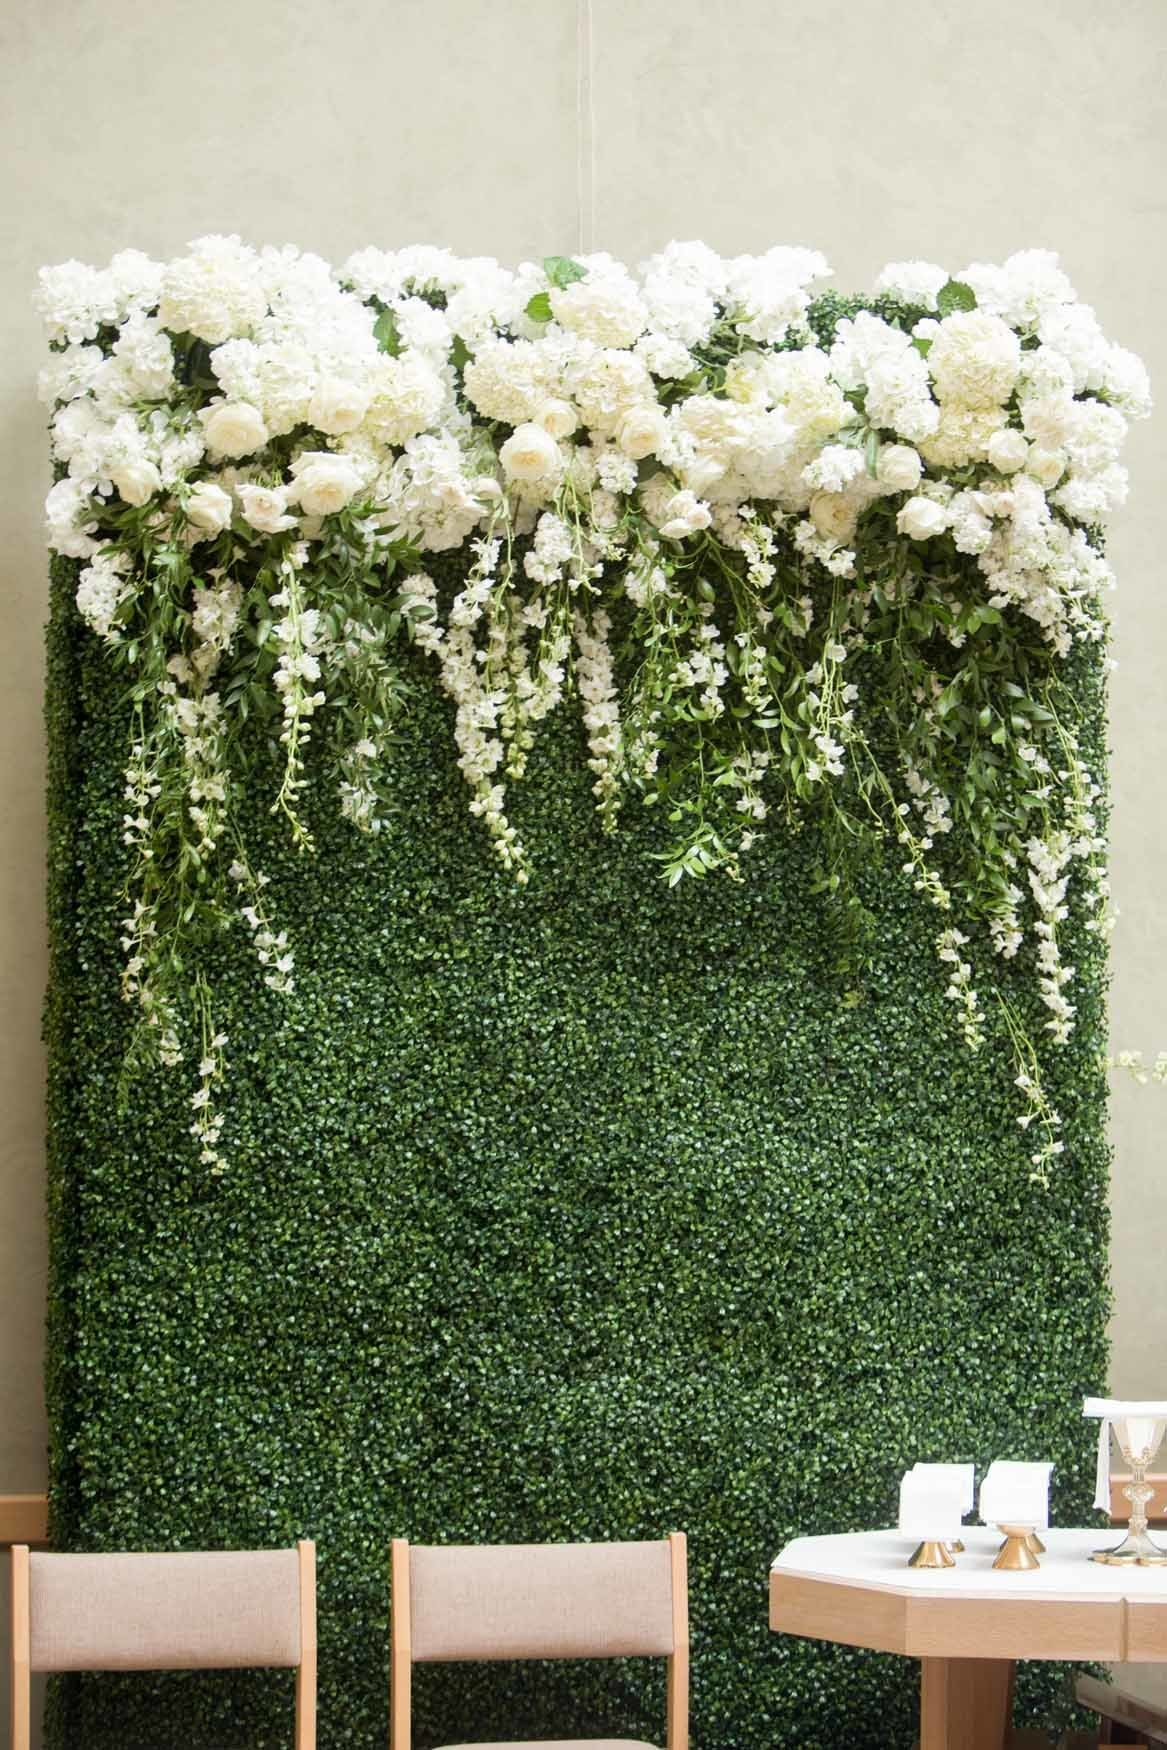 Wedding ceremony alter greenery wall with white flowers